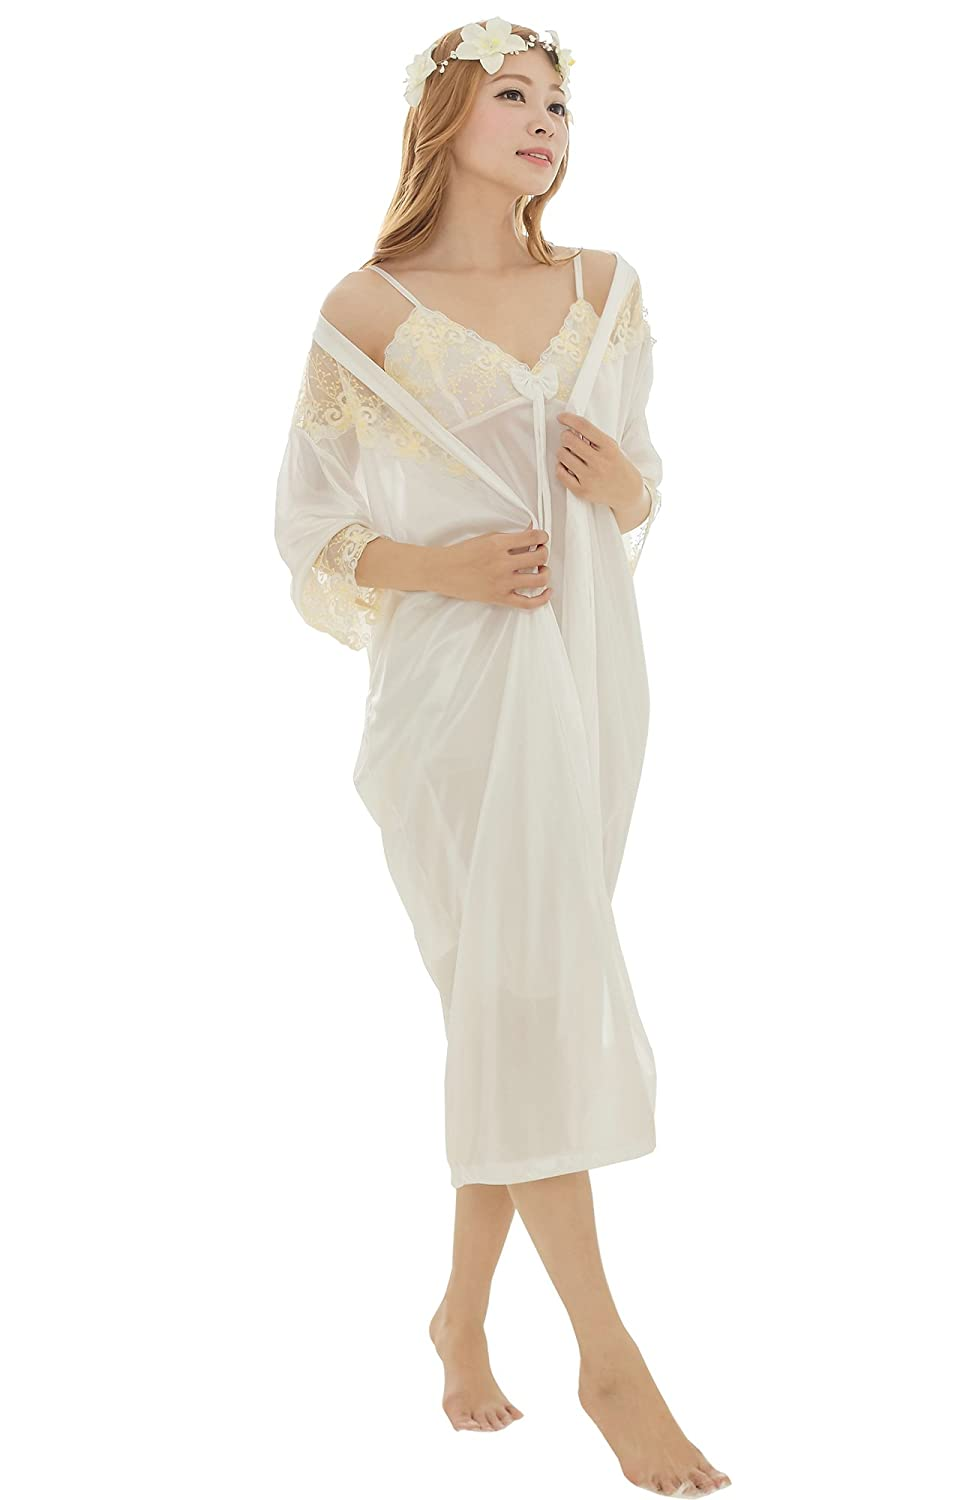 32505bb33bc1 Camellia12 Women's Sheer Floral Lace Broidery Chemise Chic 2pcs Satin Robe  Set White, One Size at Amazon Women's Clothing store: